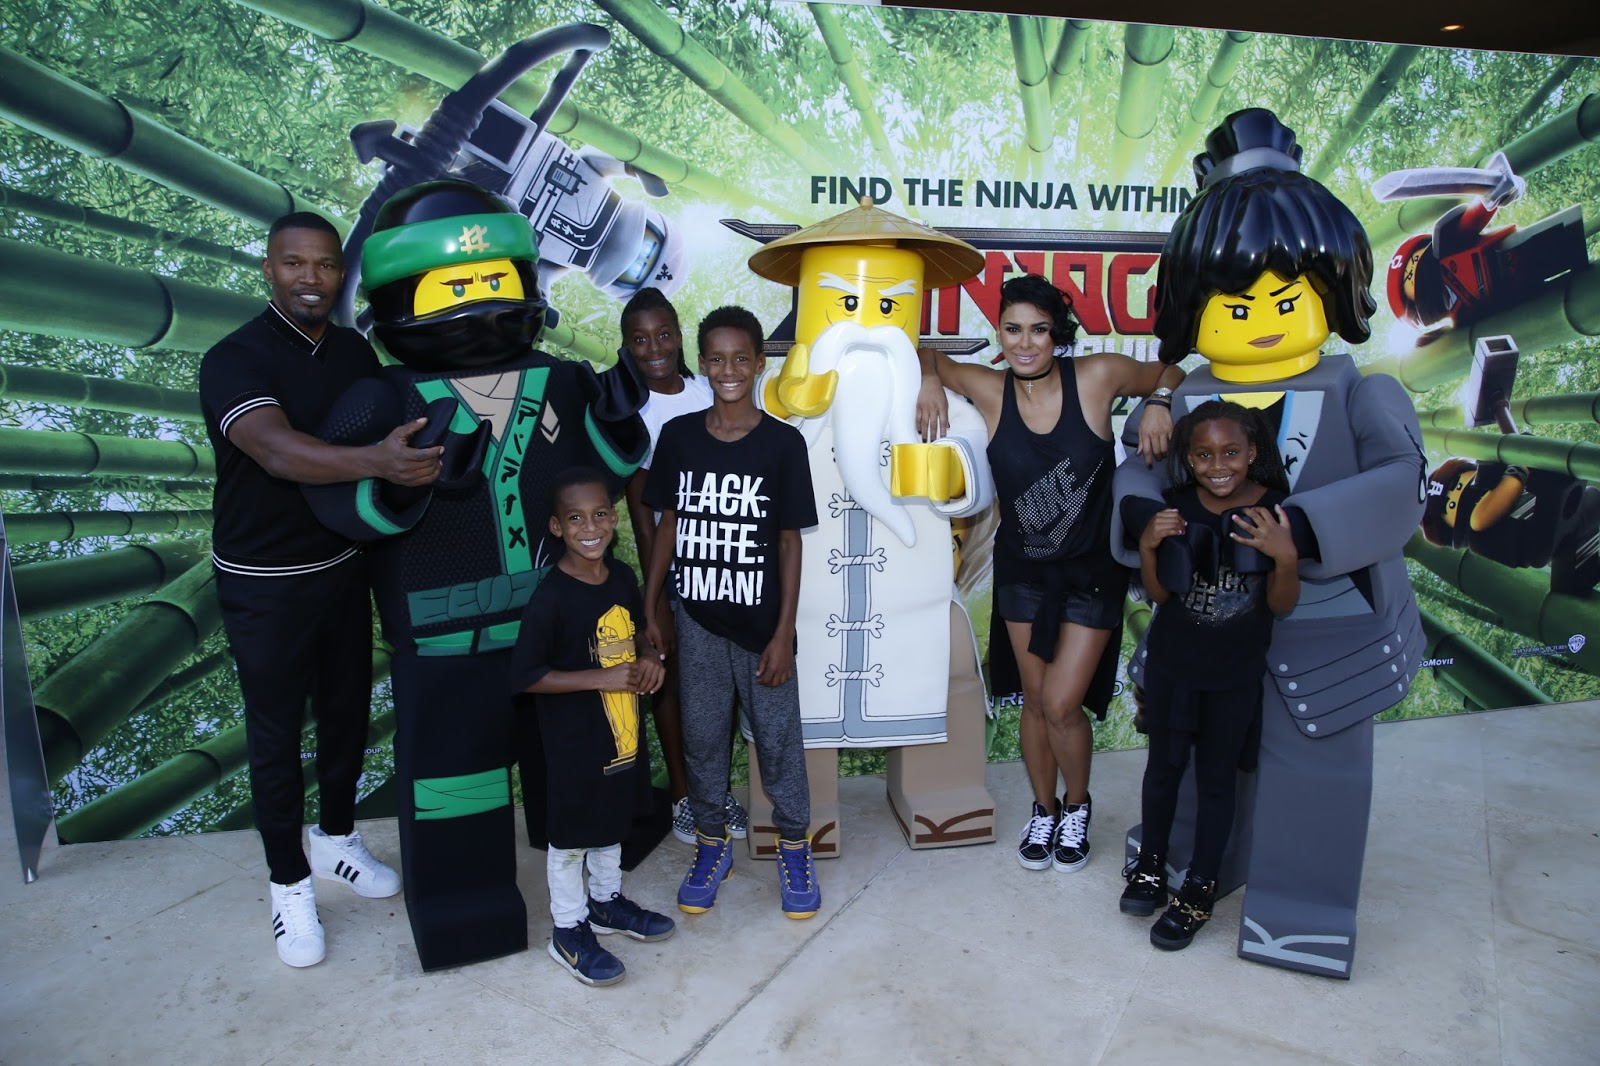 Jamie Foxx, Blac Chyna, Laura Govan at LEGO NINJAGO Back To School Bash  via  www.productreviewmom.com